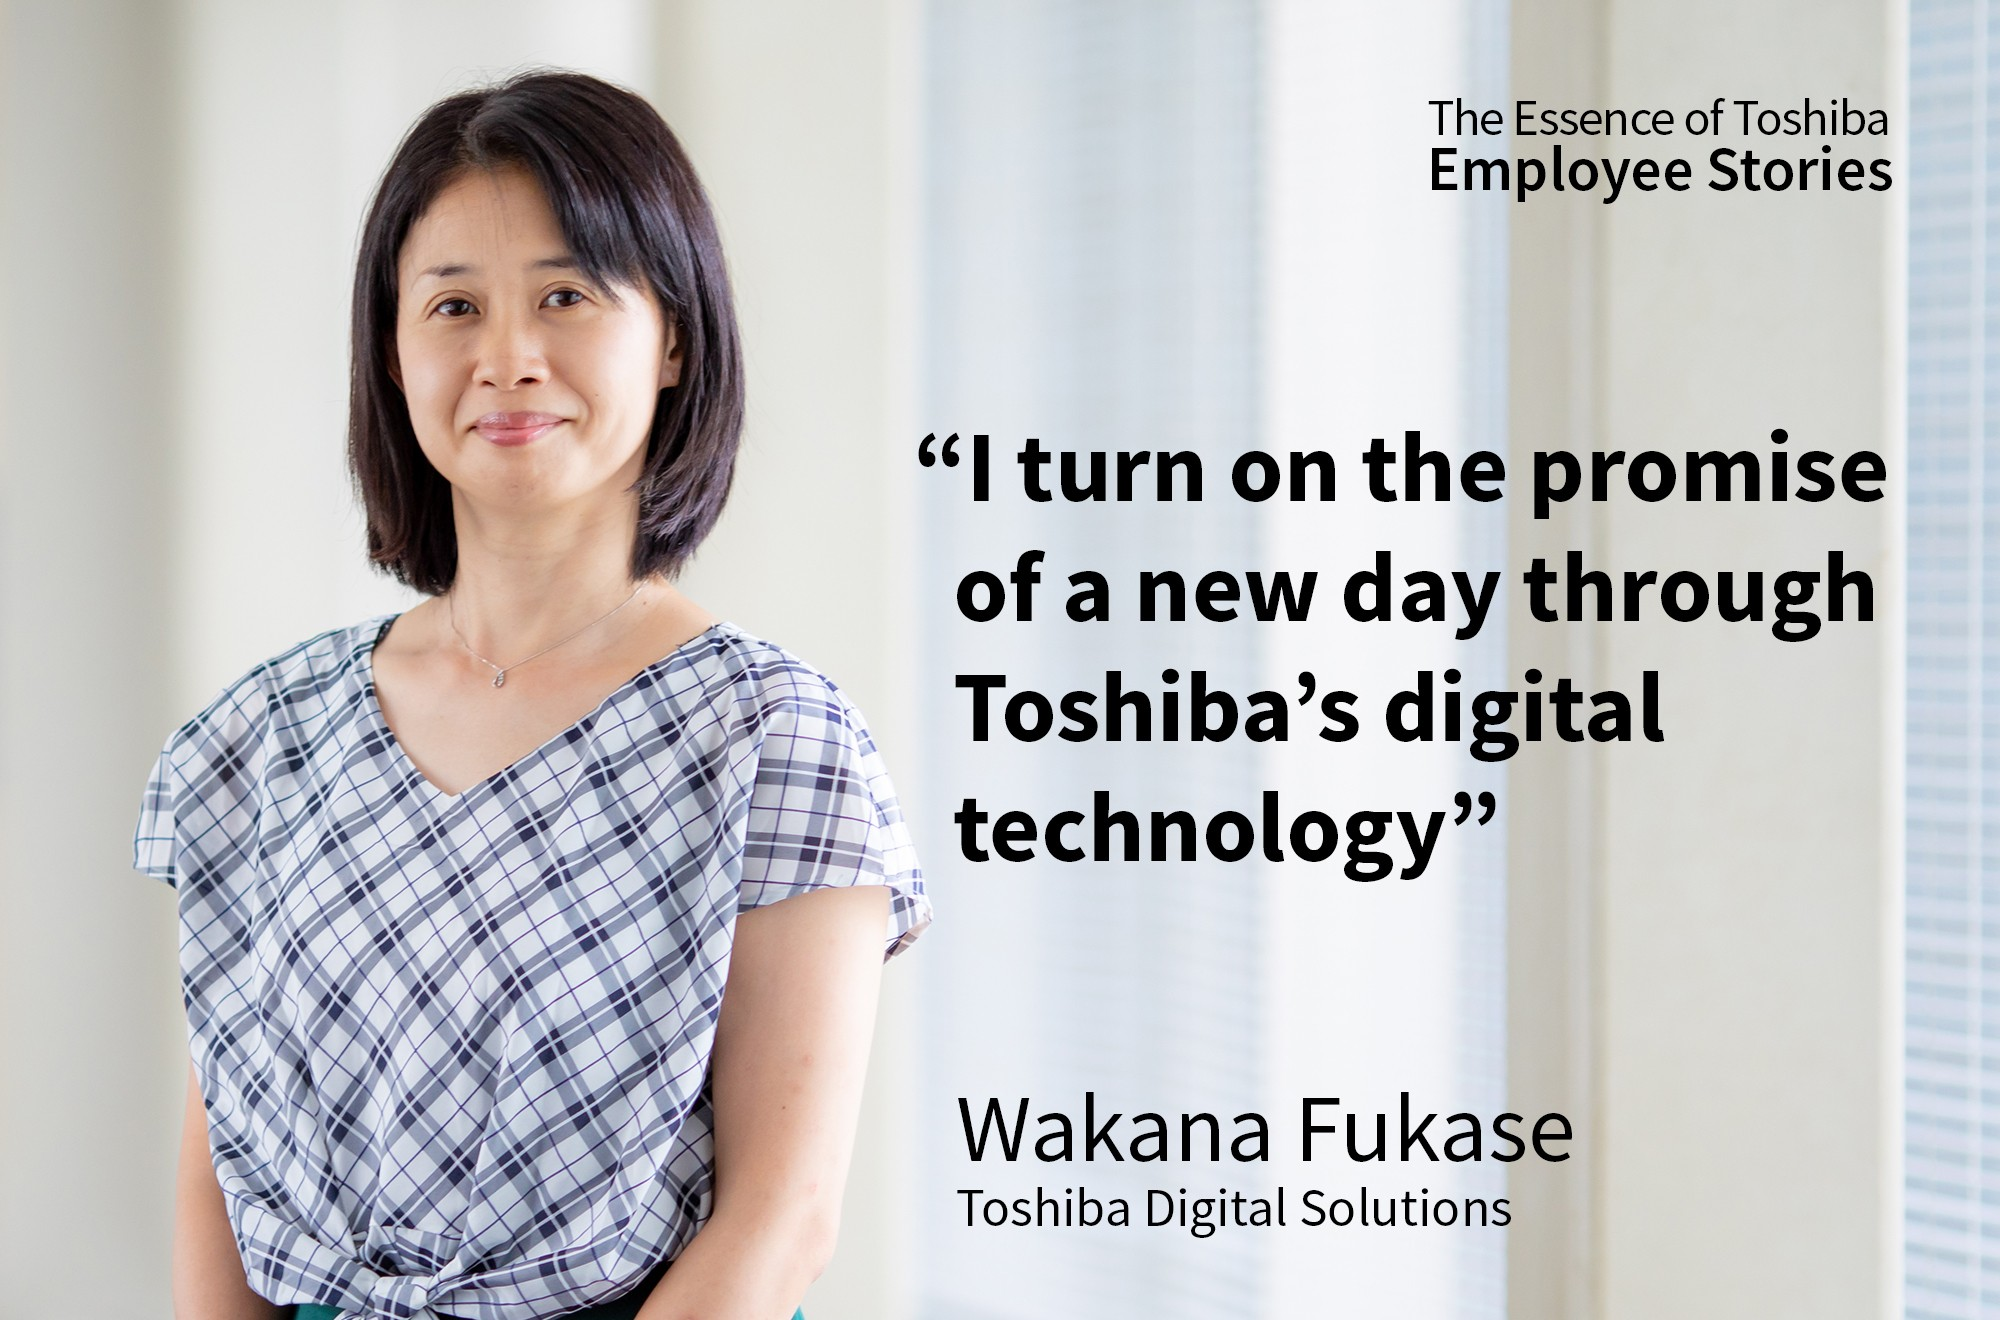 We Are Toshiba: Enabling Digital Technology to Turn on the Promise of a New Day